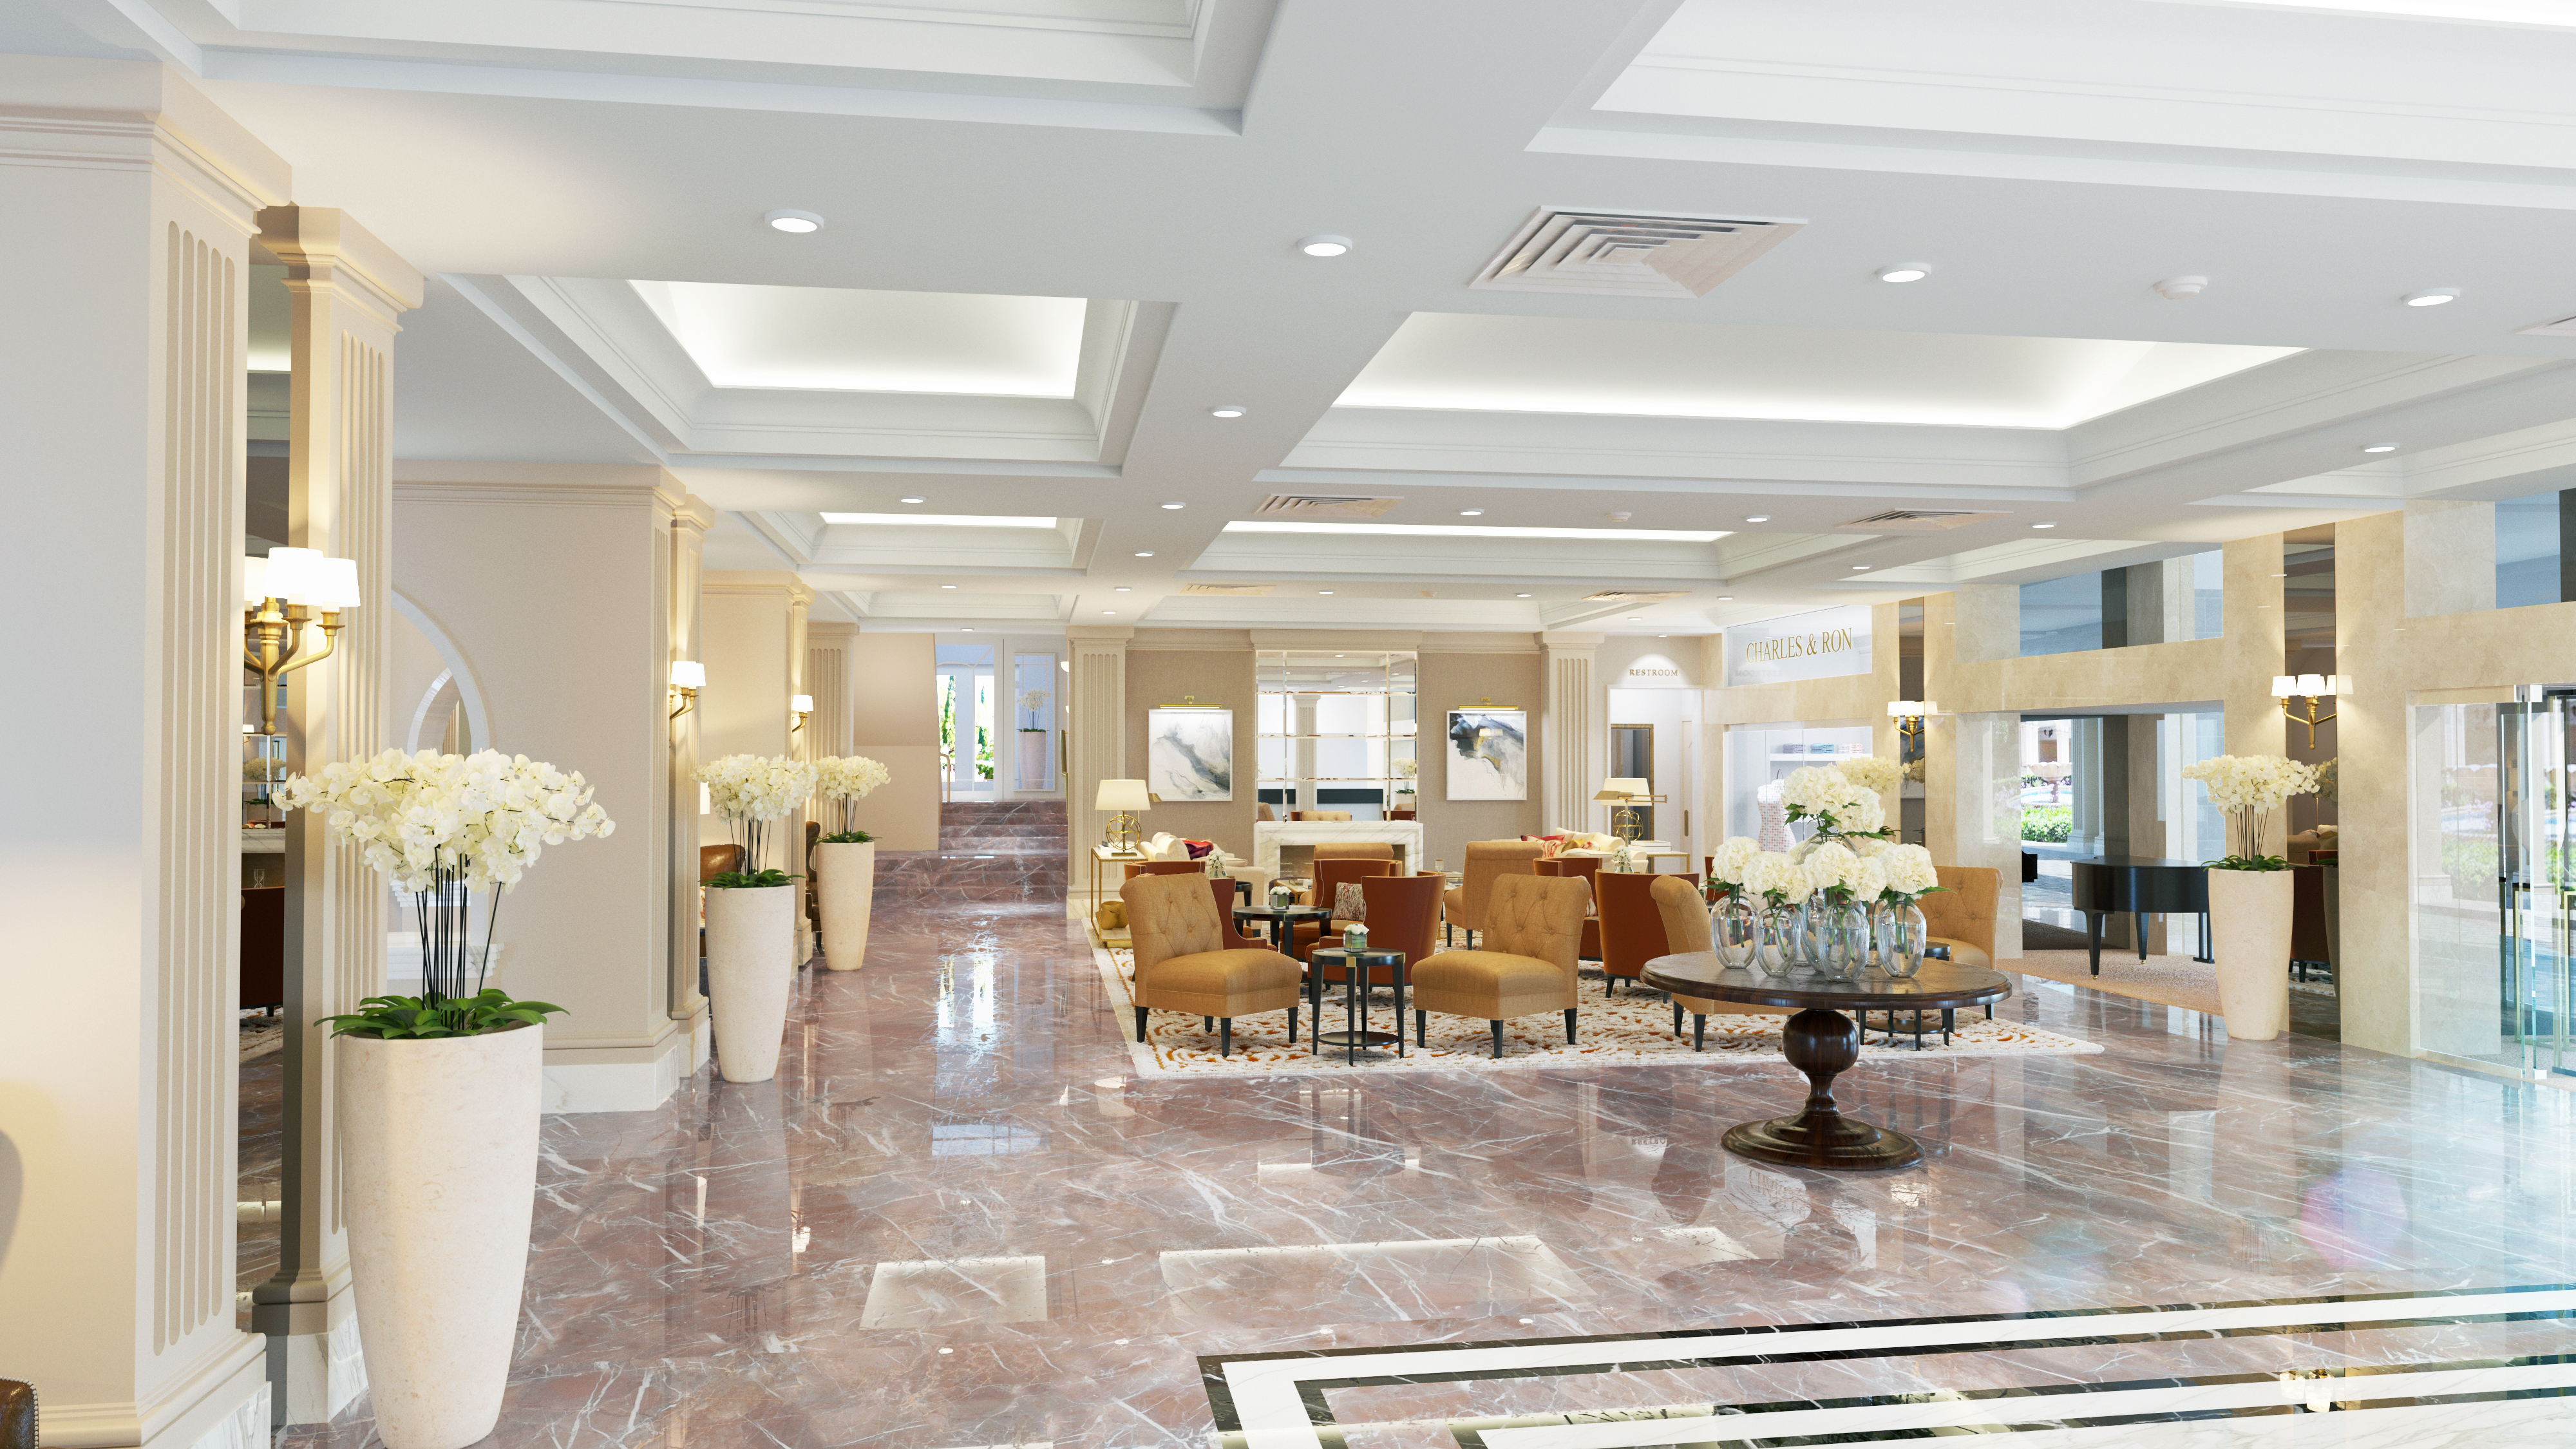 Corinthia Palace Hotel & Spa unveils new look